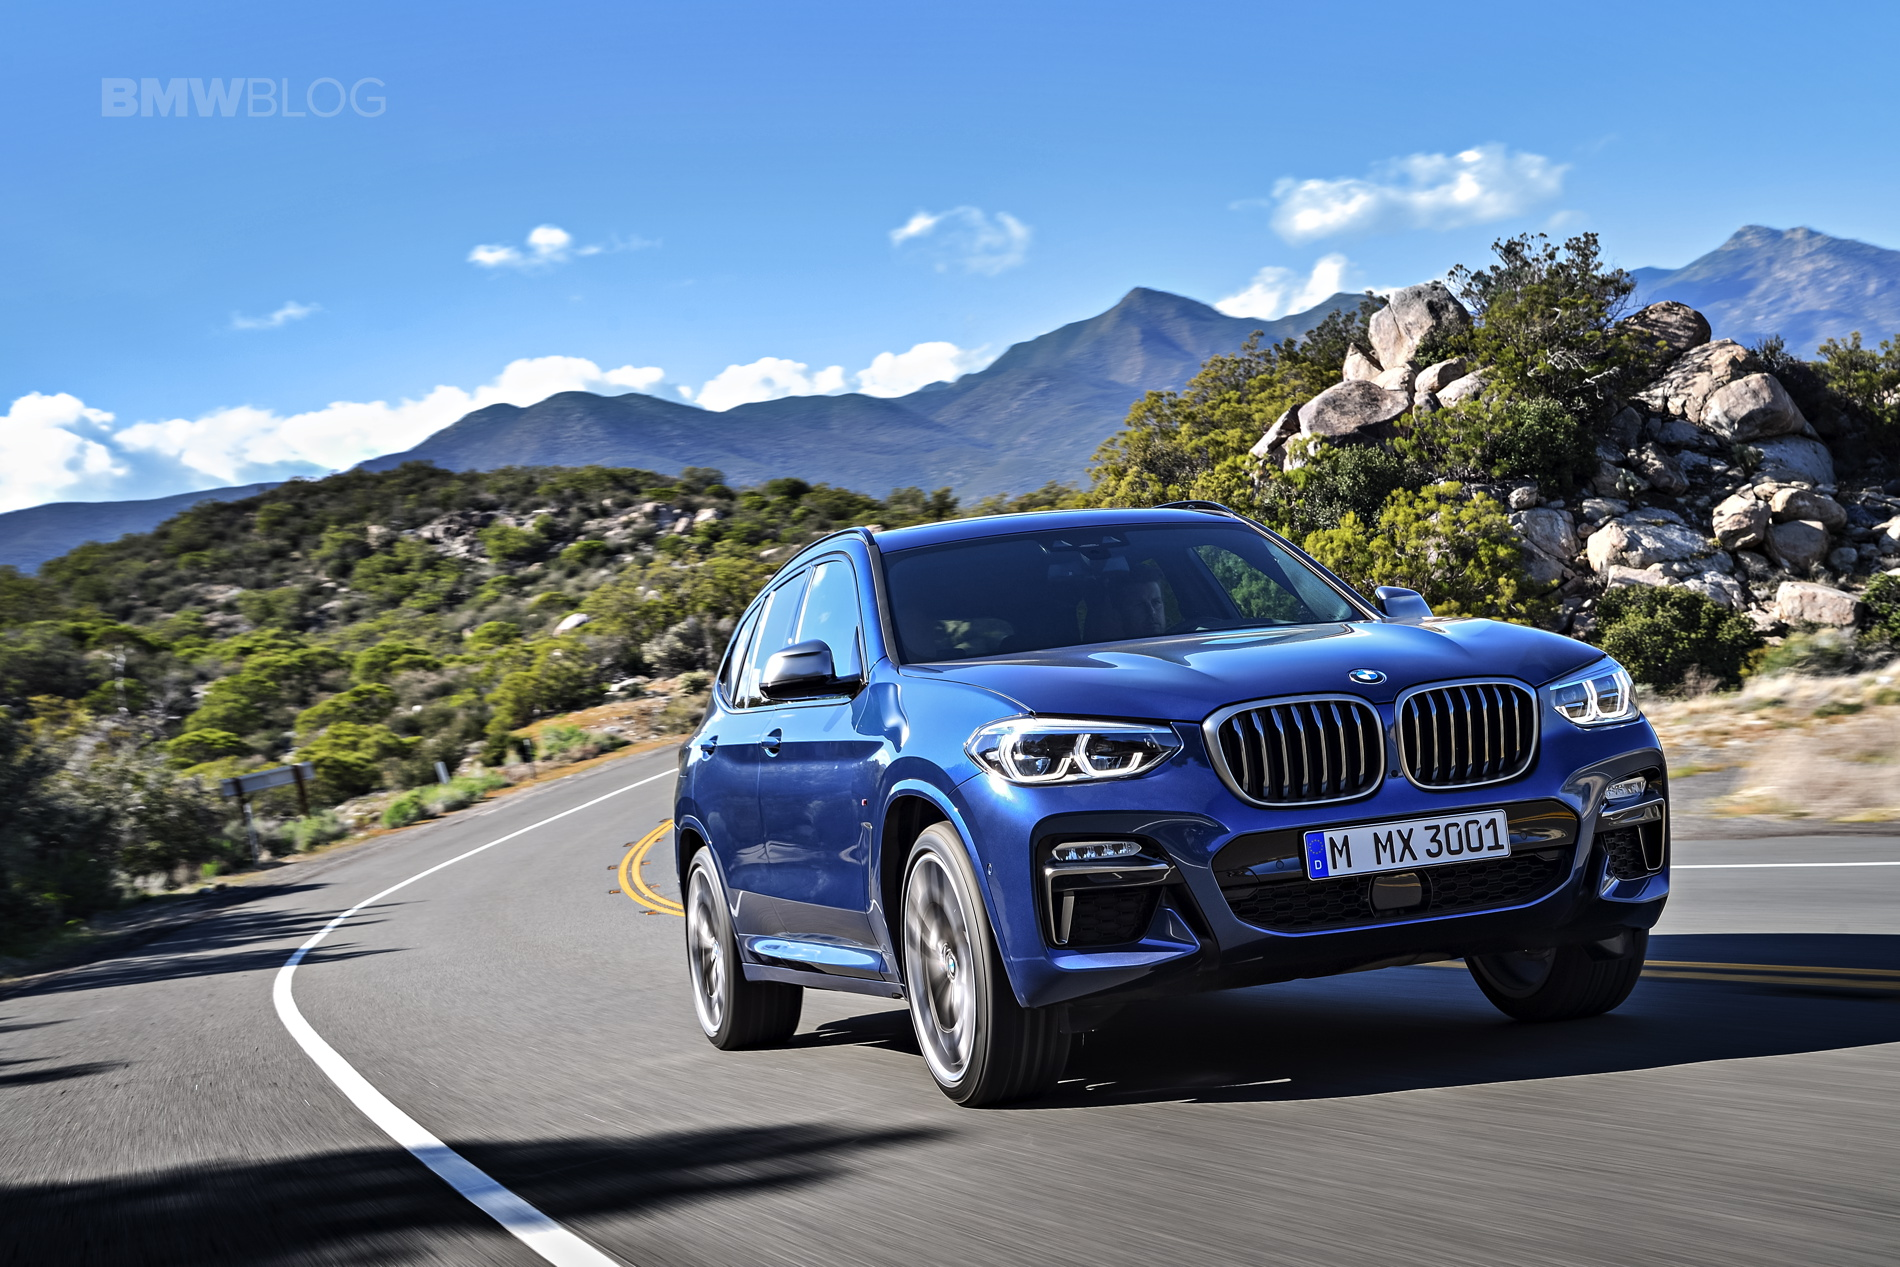 2018 Bmw X3 Top Car Release 2019 2020 325i Horn Location Photo Gallery